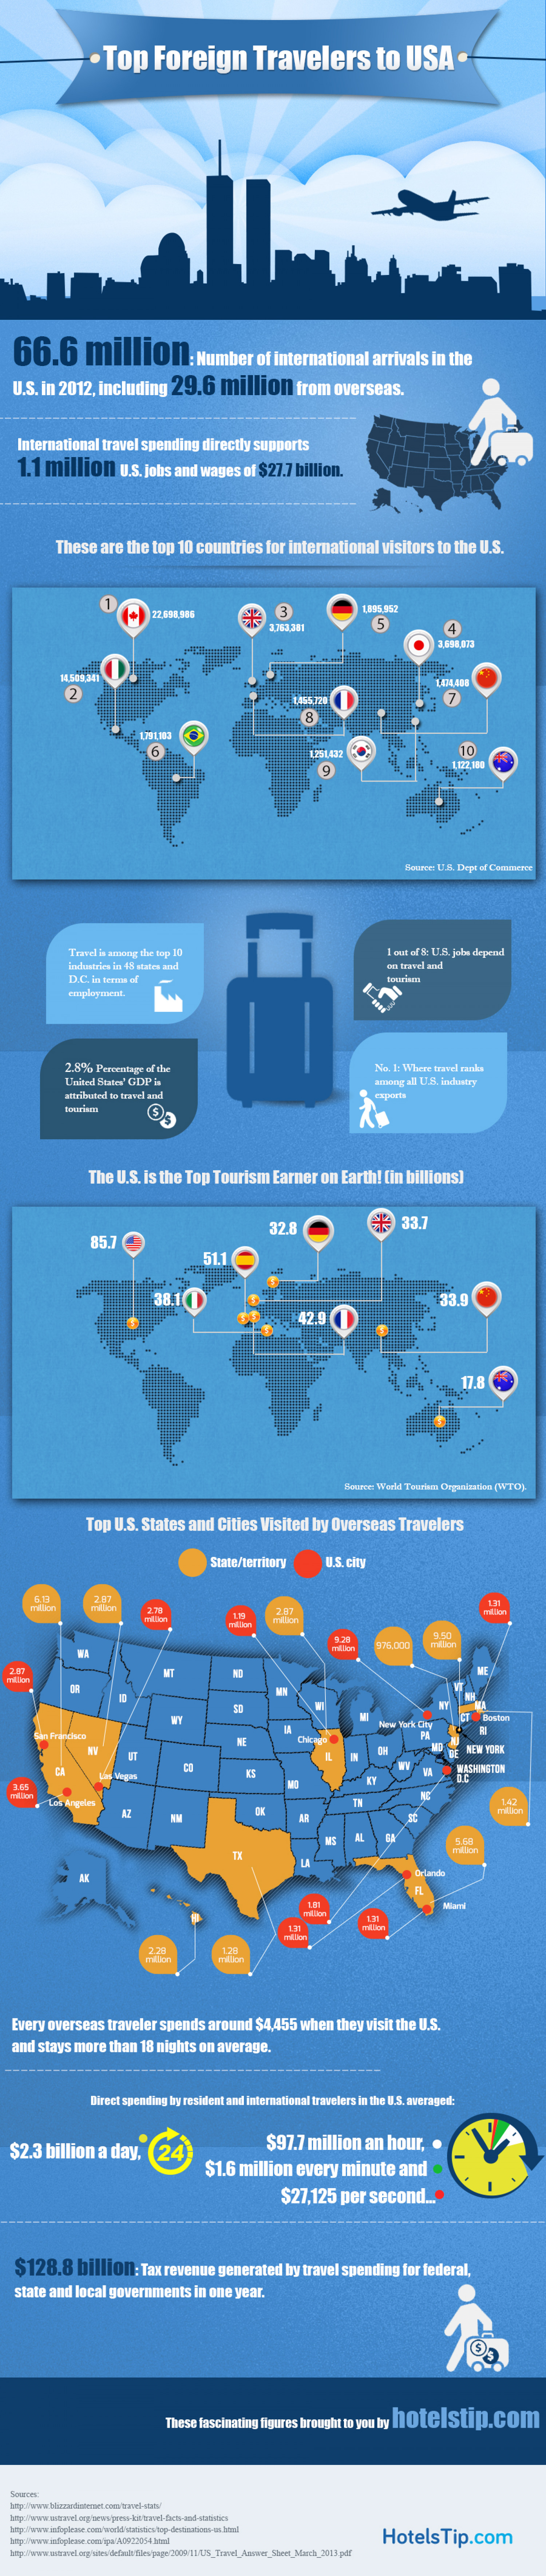 Top Foreign Travelers to USA Infographic